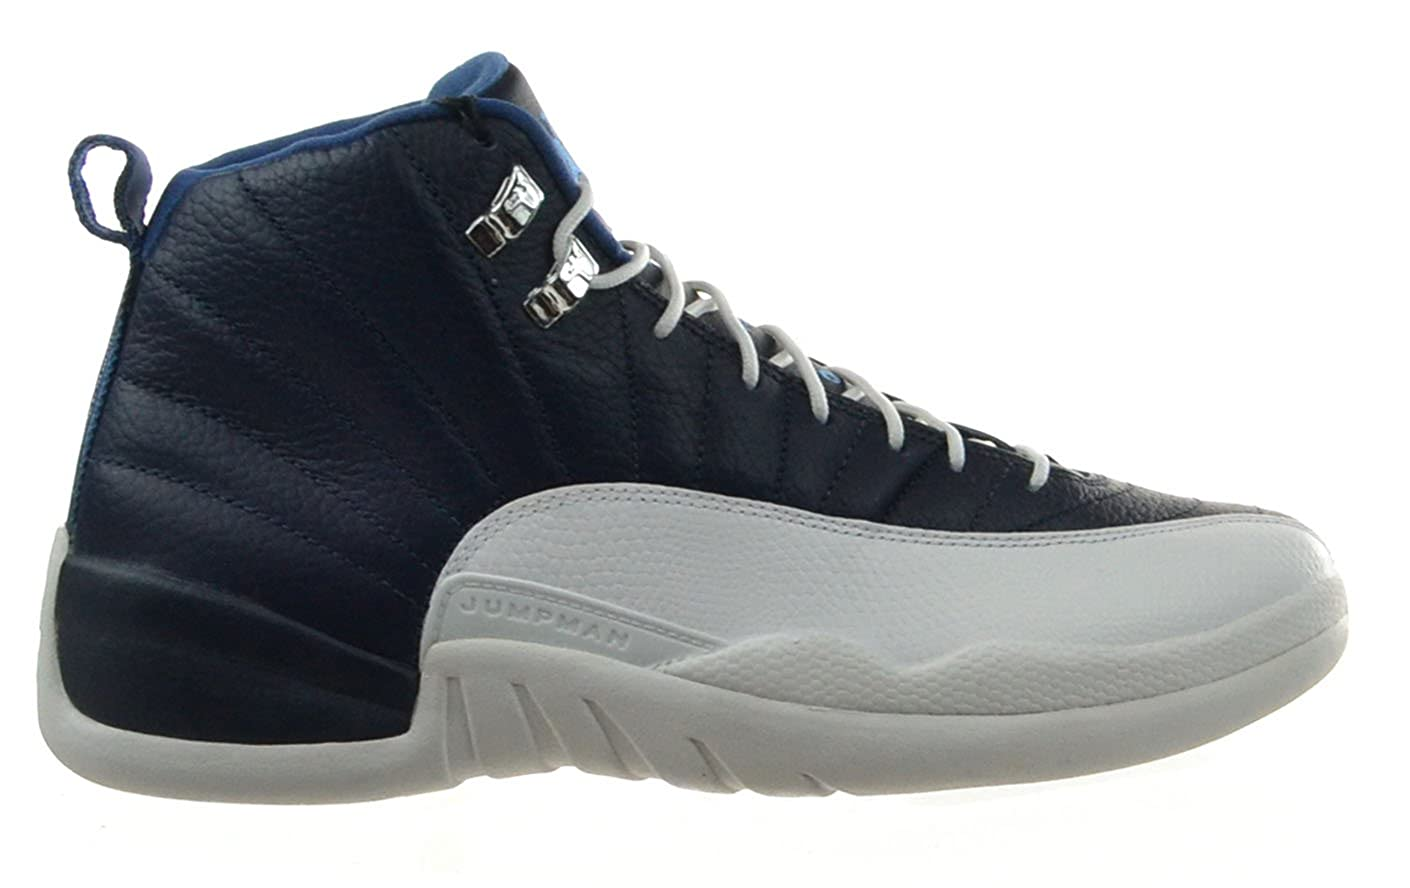 new styles 0d8a6 06c18 Jordan Air 12 Retro Obsidian Men's Shoes Obsidian/University  Blue-White-French Blue